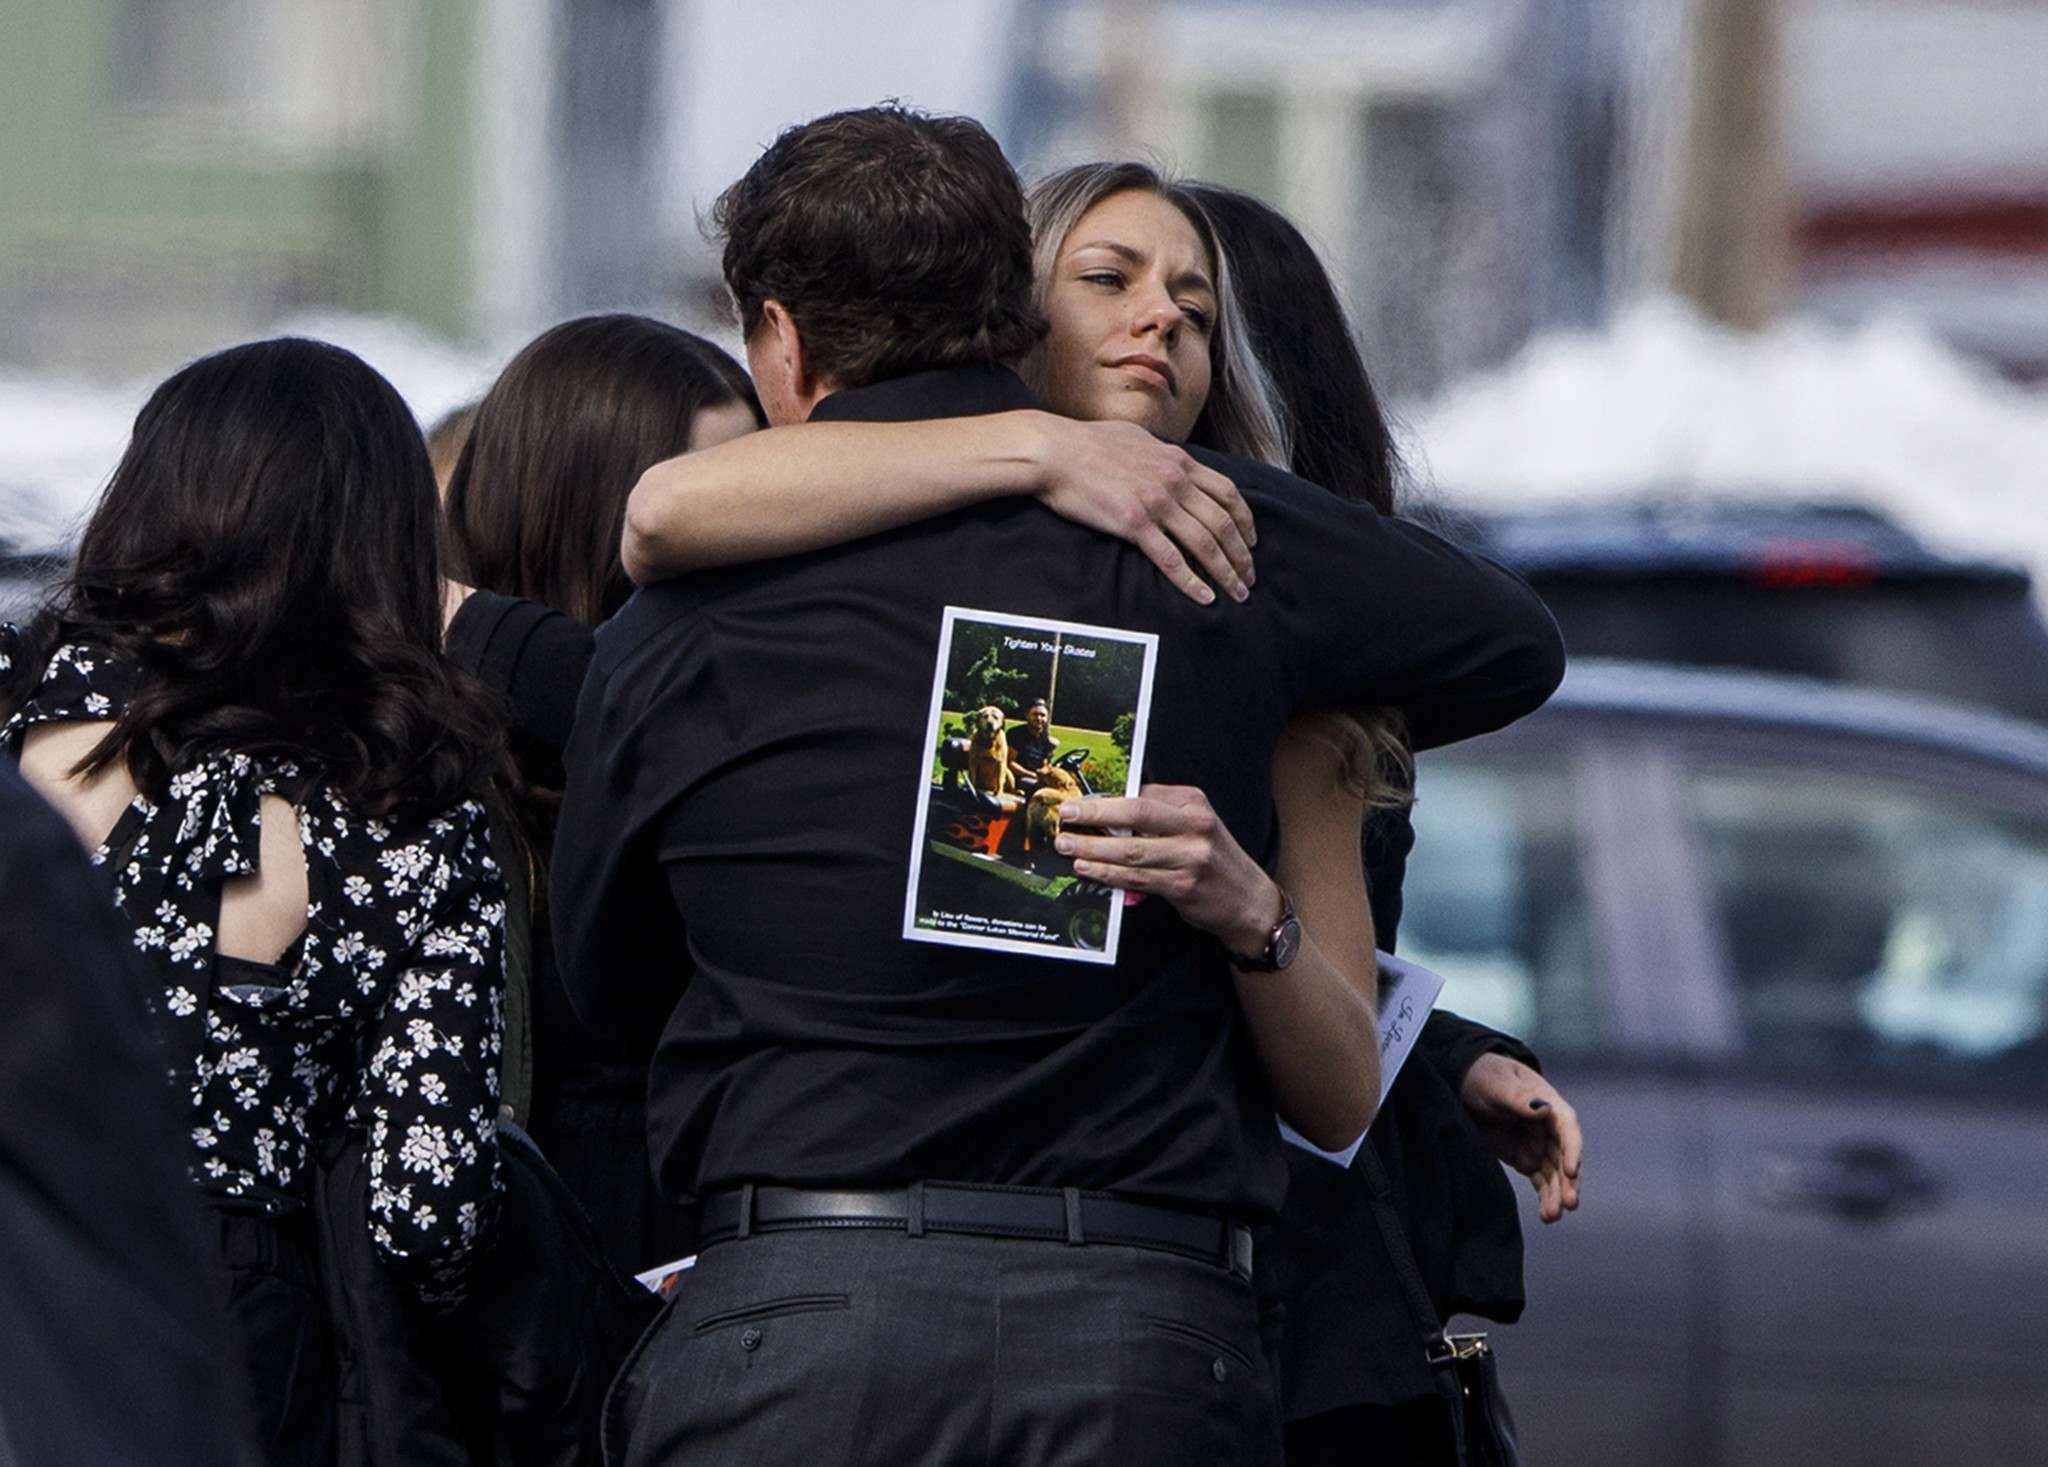 Jason Franson / THE CANADIAN PRESS FILES</p><p>Mourners hug after the funeral for Humboldt Broncos player Conner Lukan in April. The city of Humboldt, Sask. became the emotional epicentre for enormous tragedy in April, when 16 players, staff and media linked to the Humboldt Broncos junior hockey team died in a highway collision en route to a game in Nipawin.</p>